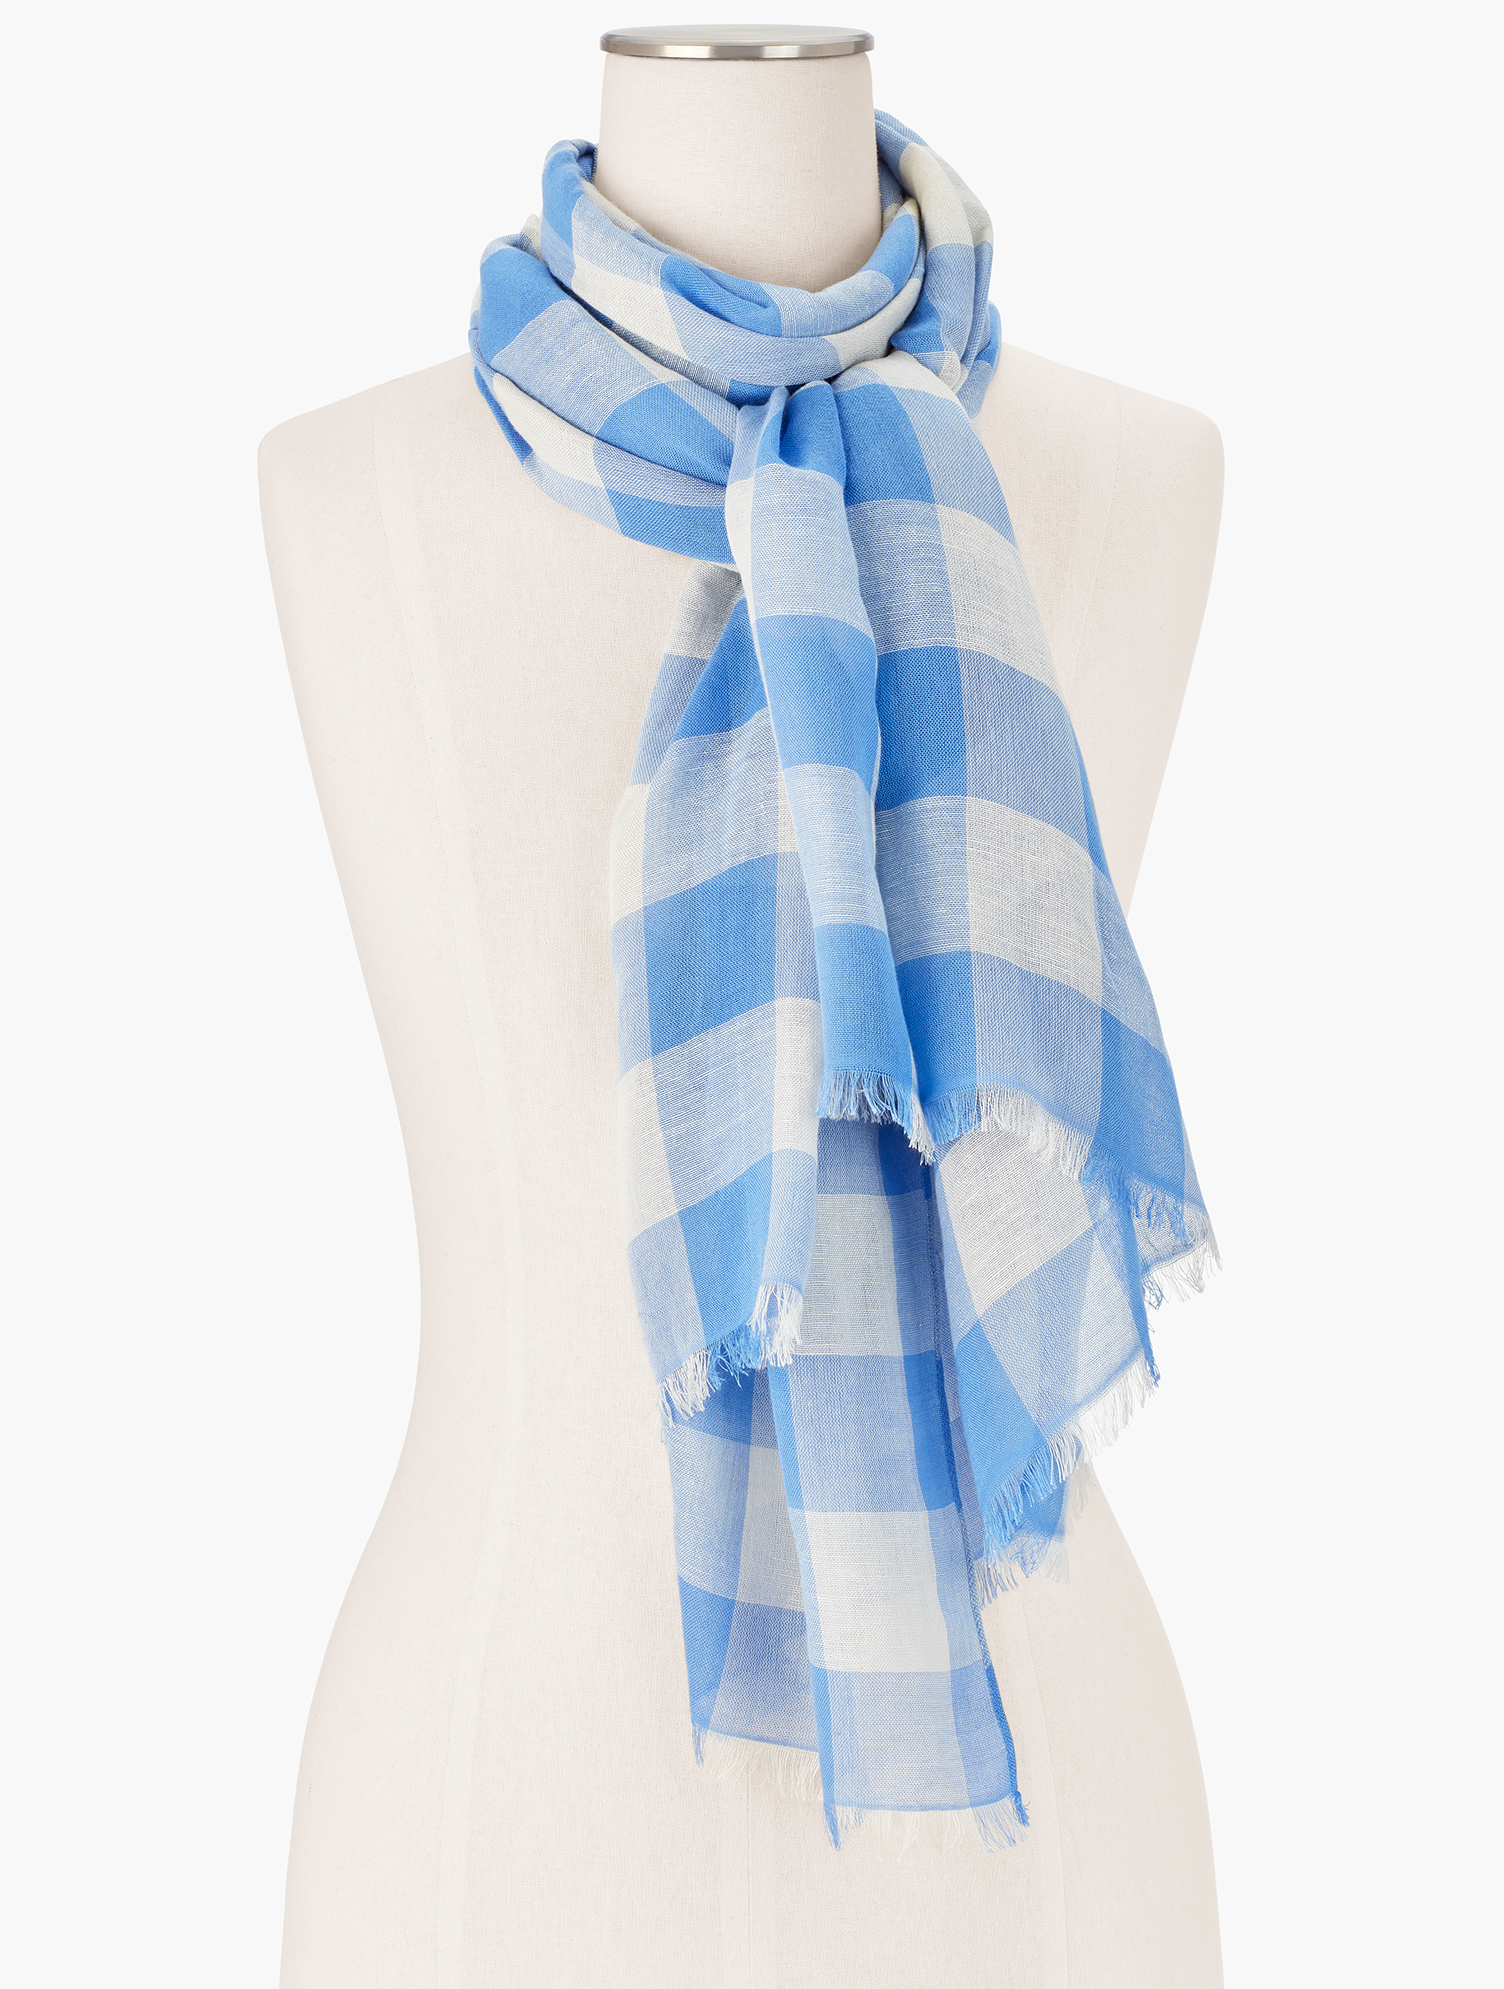 Classic gingham check elevates any outfit. Features Imported Fit: 27 inches X 72 inches Material: 65% Rayon, 35% Cotton Care: Hand Wash; Line Dry Spring Gingham Oblong Scarf - Blue Wave - 001 Talbots